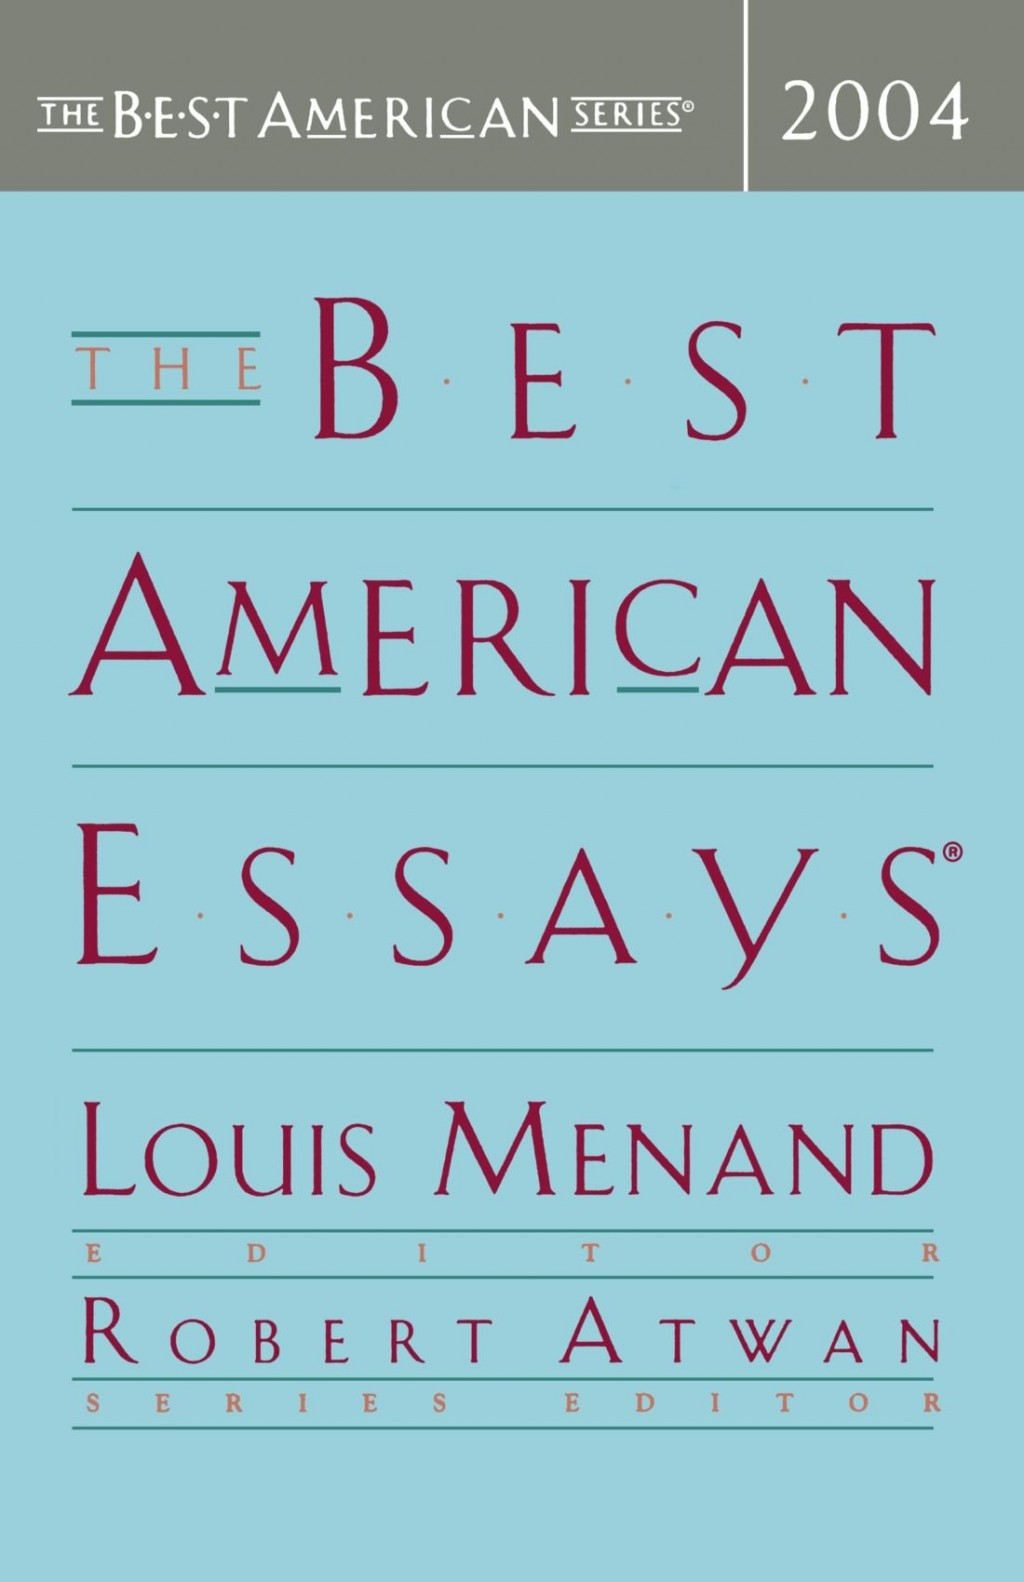 015 Essay Example The Best American Essays Wonderful 2018 List Pdf Download 2017 Free Large